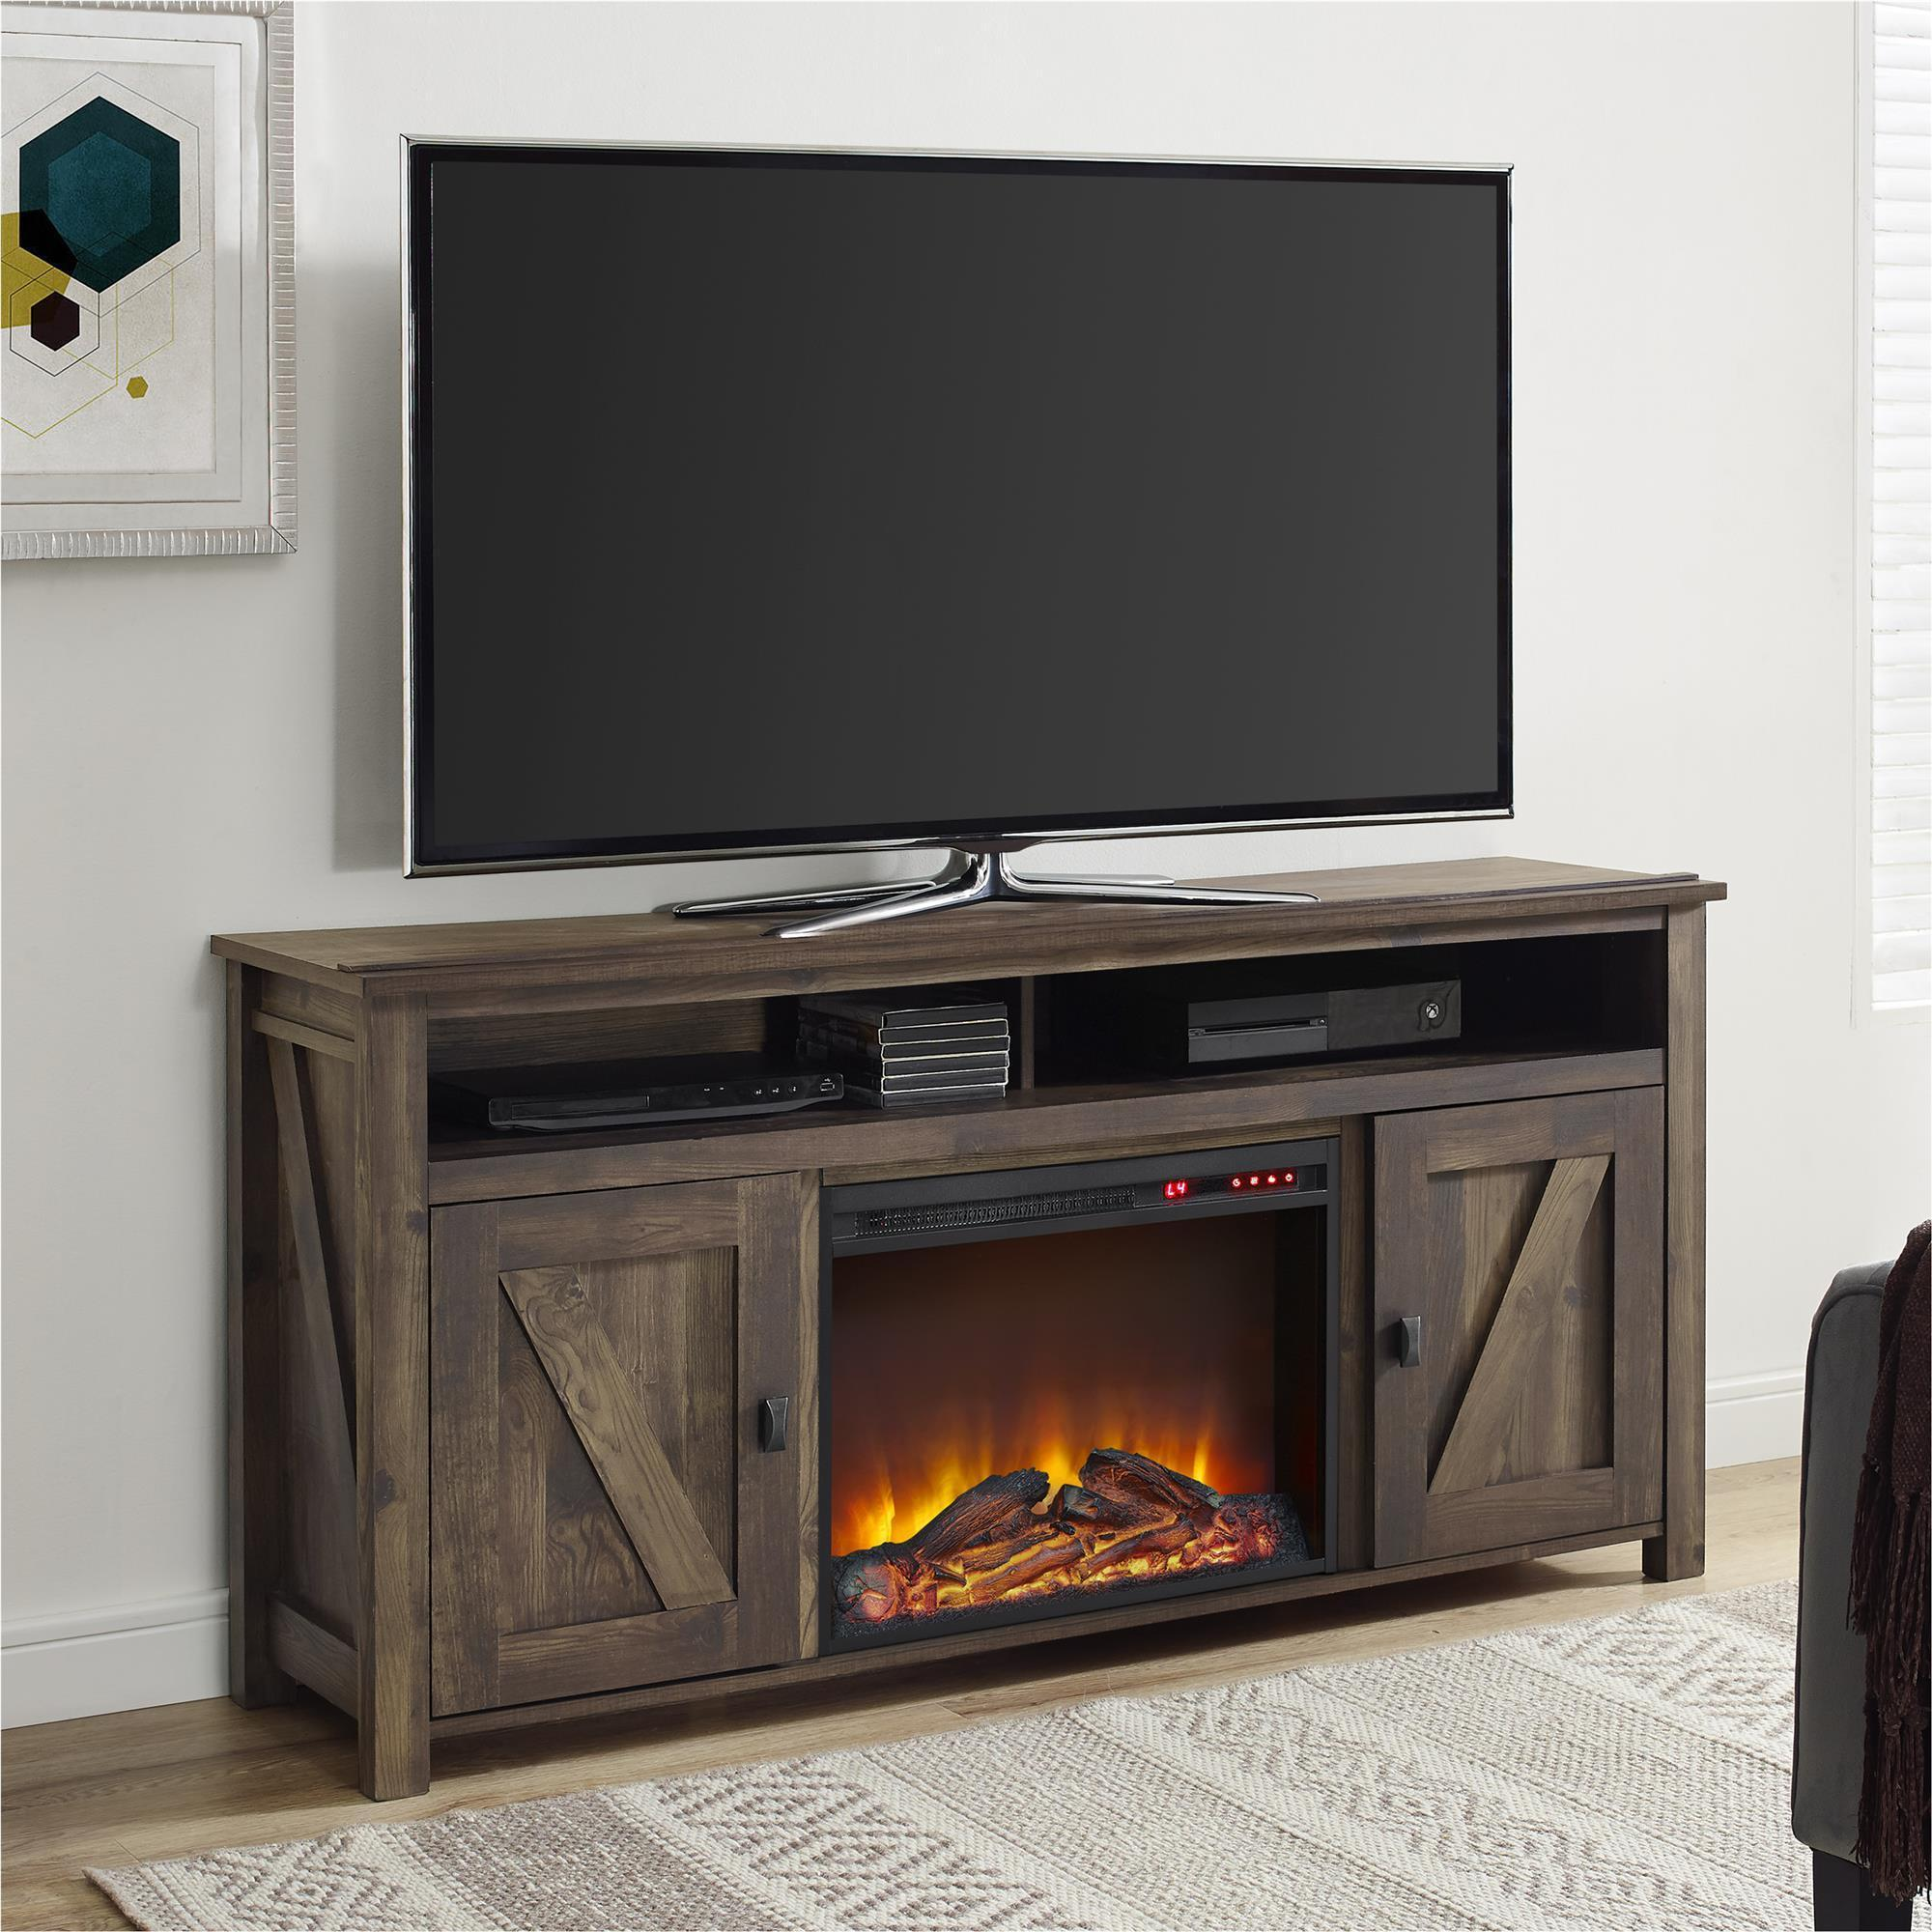 for fireplace of bookcase modern media subscribed depot mostic credited atmosphere electric sawyer family e the harmony center has with design warm home popular kerry a marvelous com from